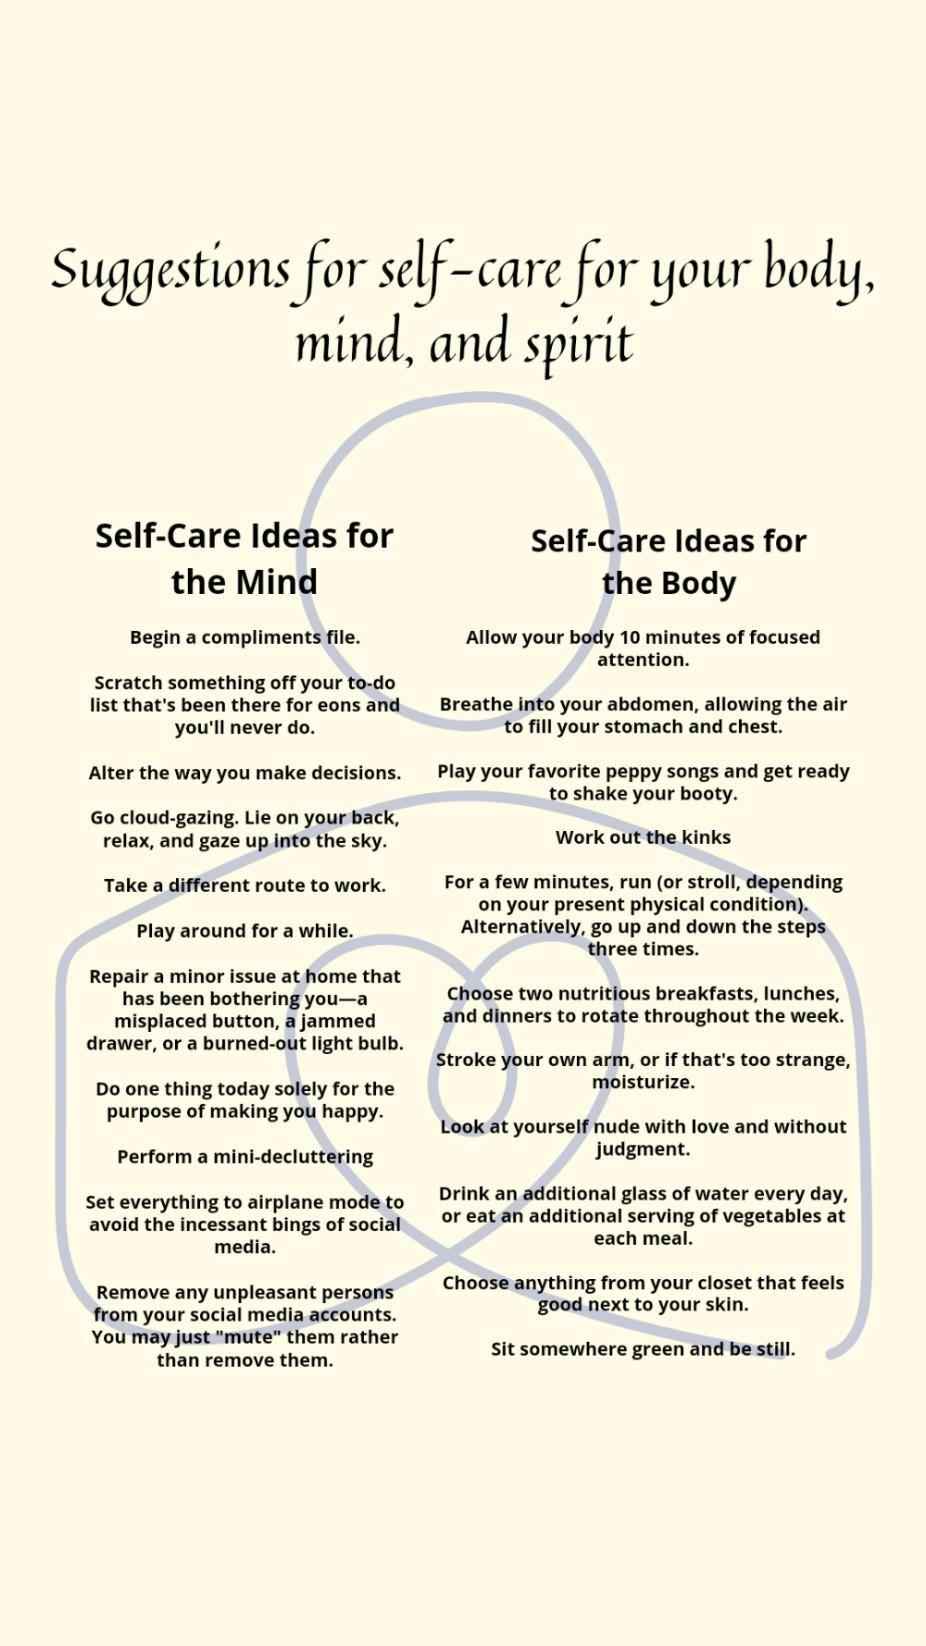 How to stop depending on people and self care tips for body, soul and mind